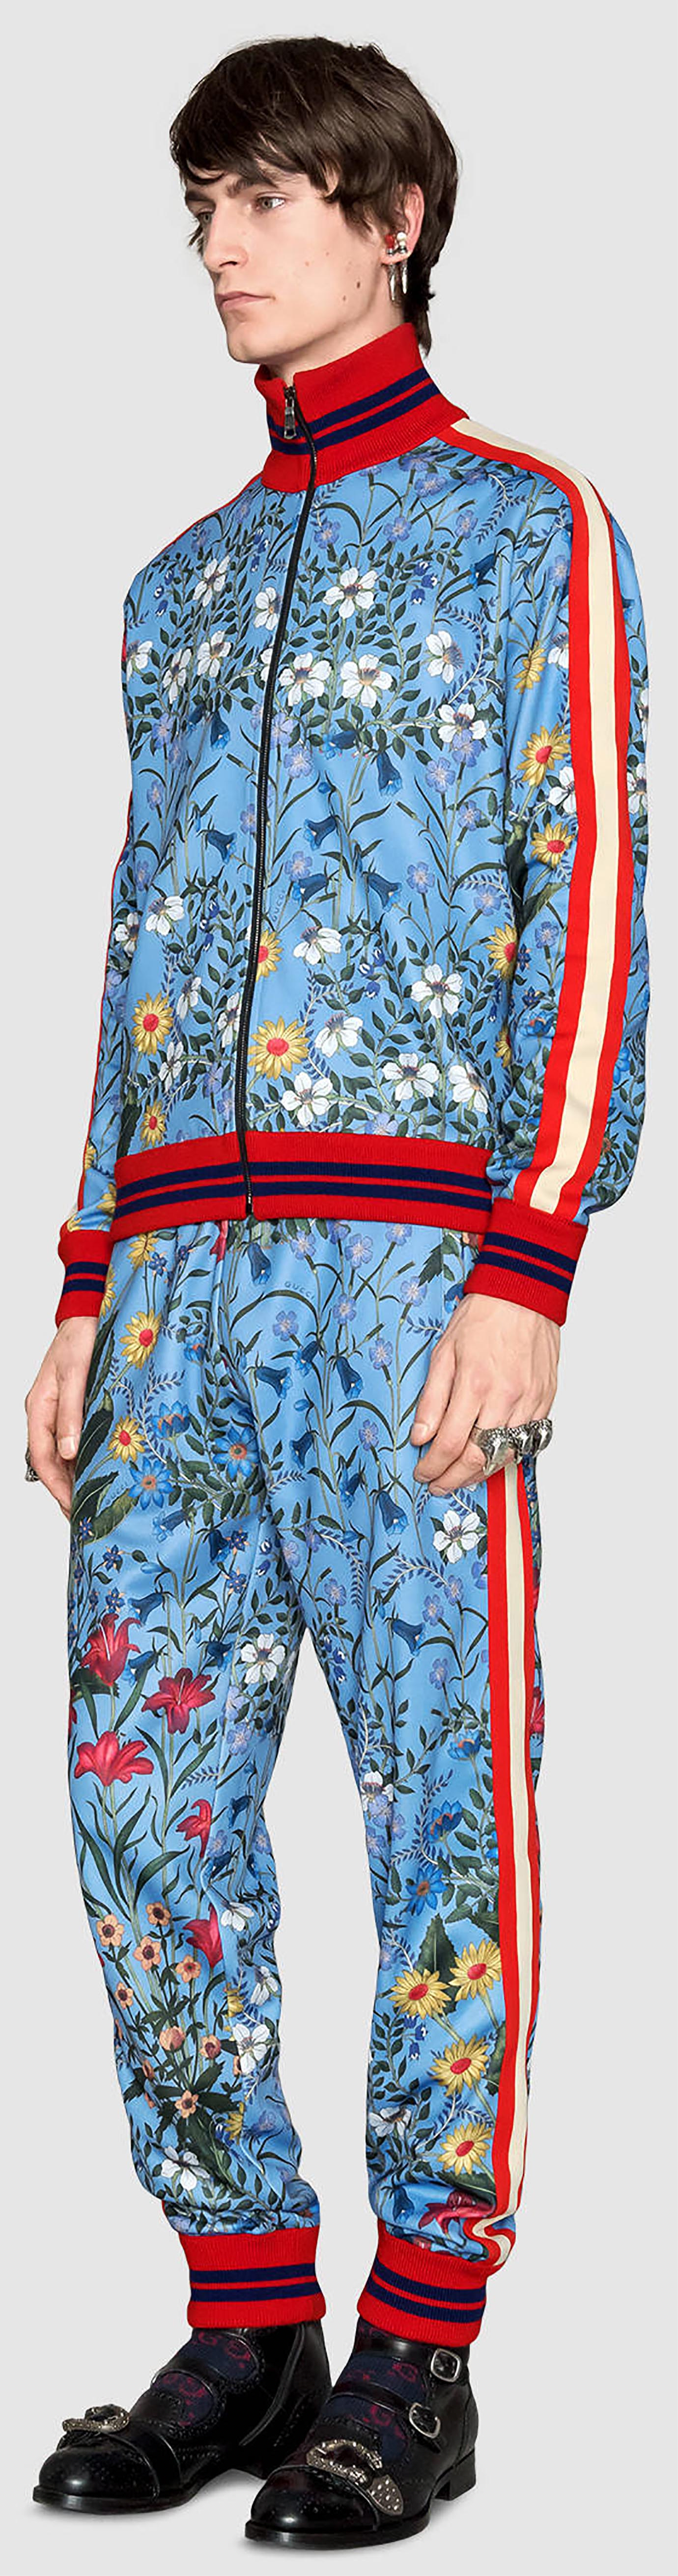 new-flora-technical-jersey-jacket-gucci2